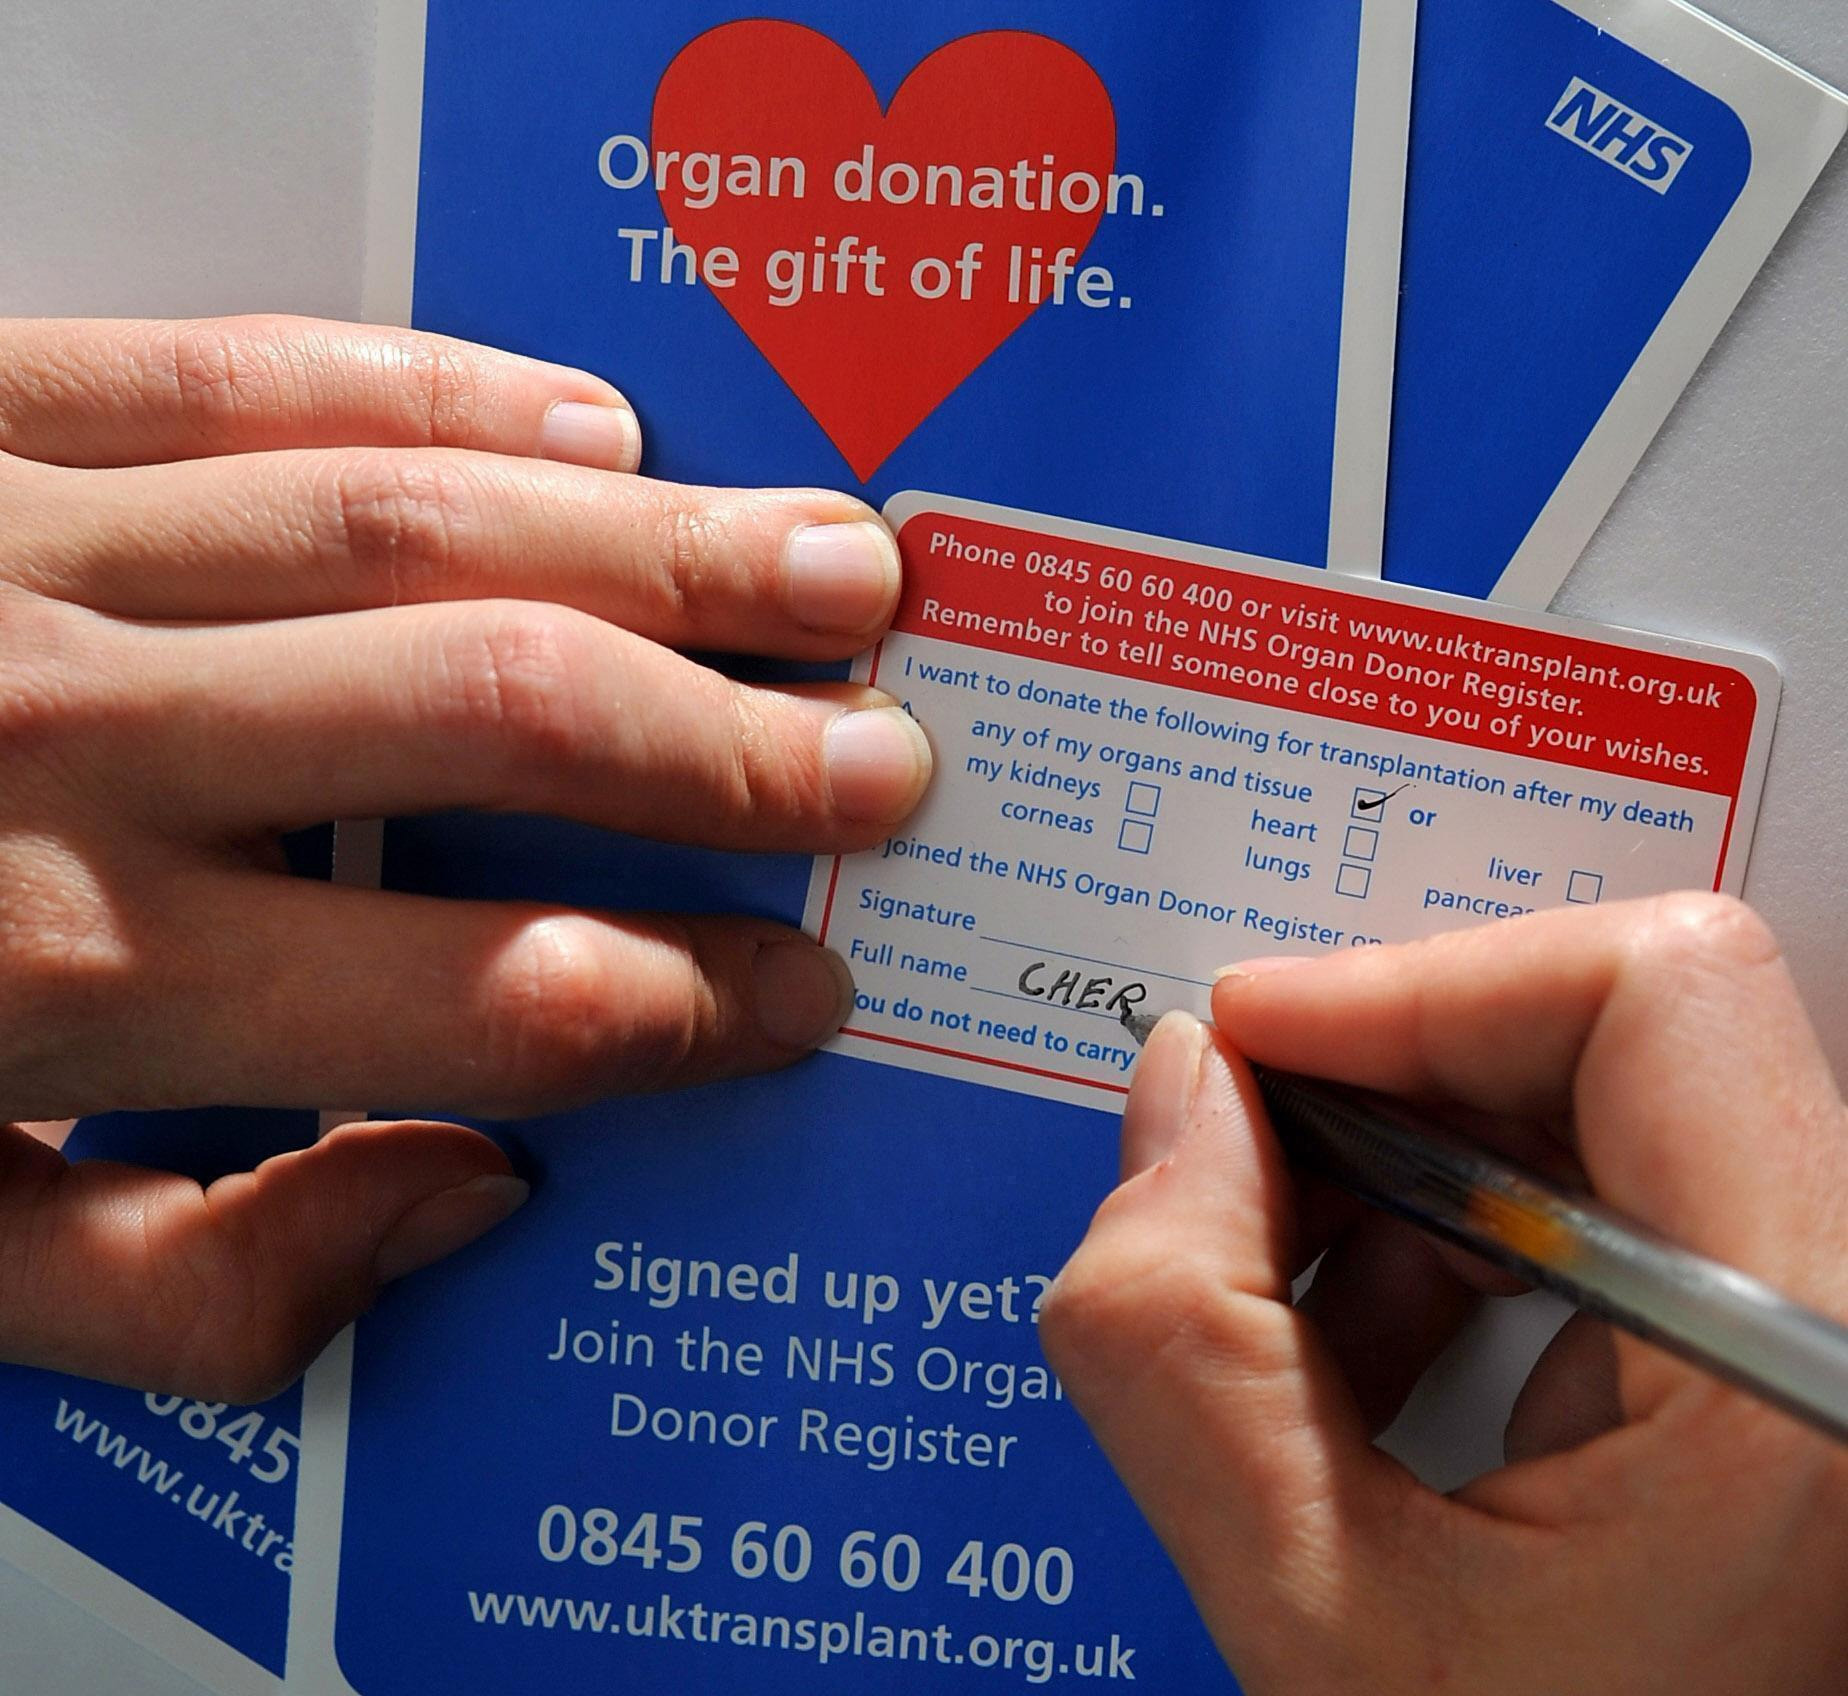 More organ donors are continually needed